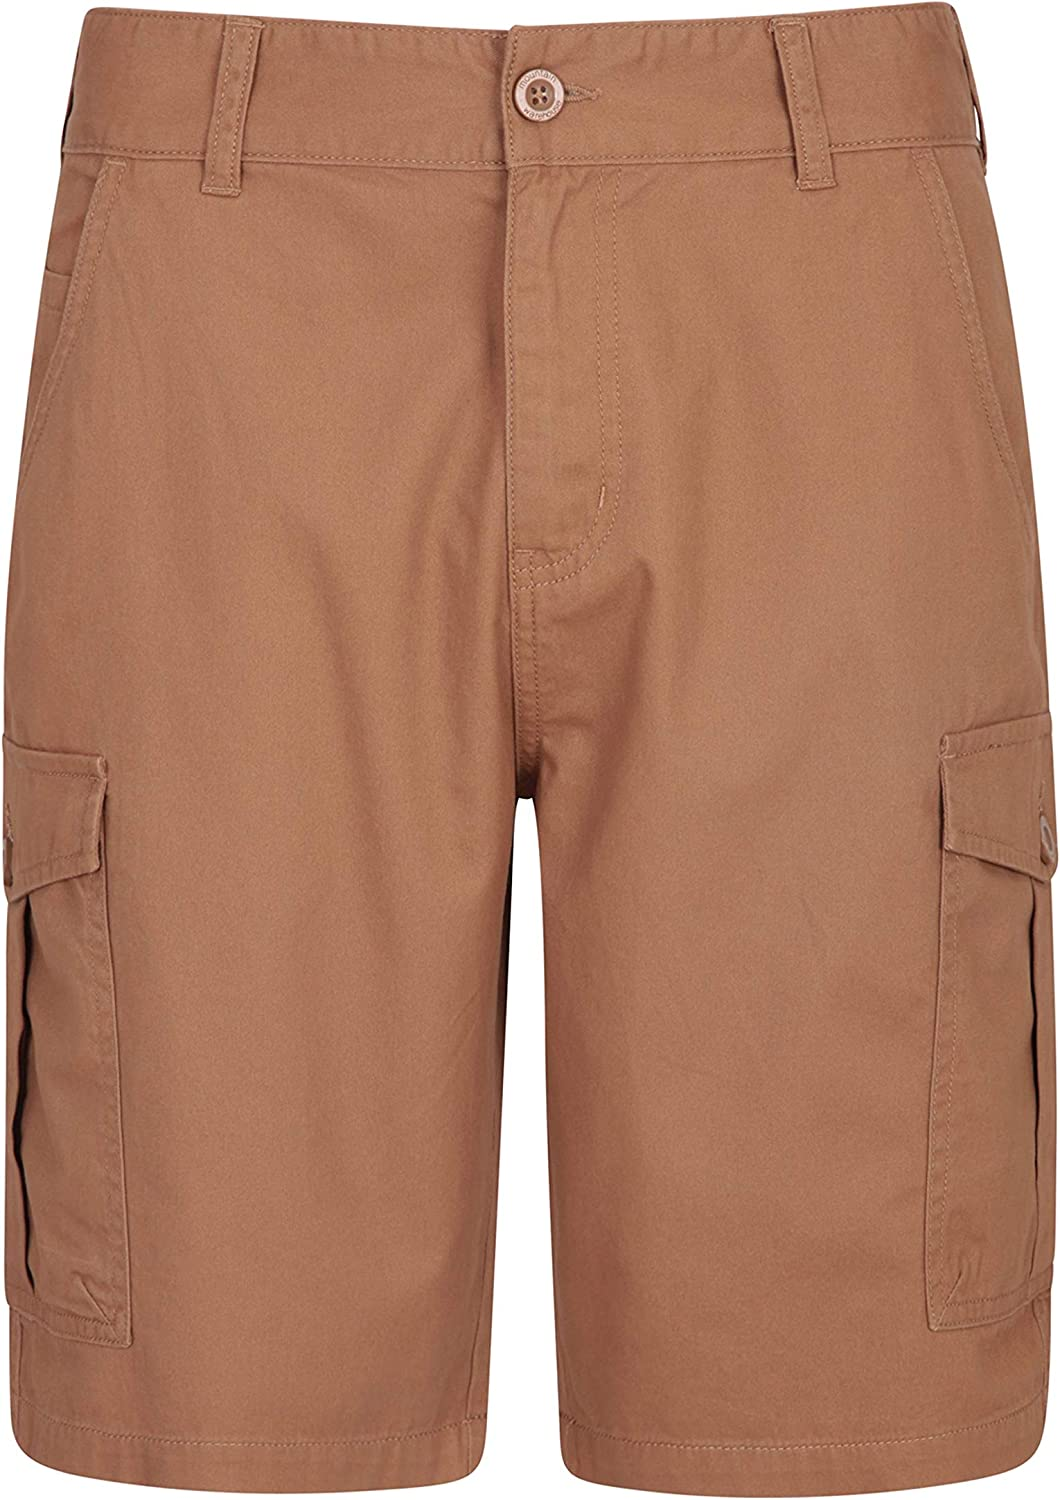 Mountain Warehouse Lakeside Mens Shorts - Twill Cotton Cargo Pants